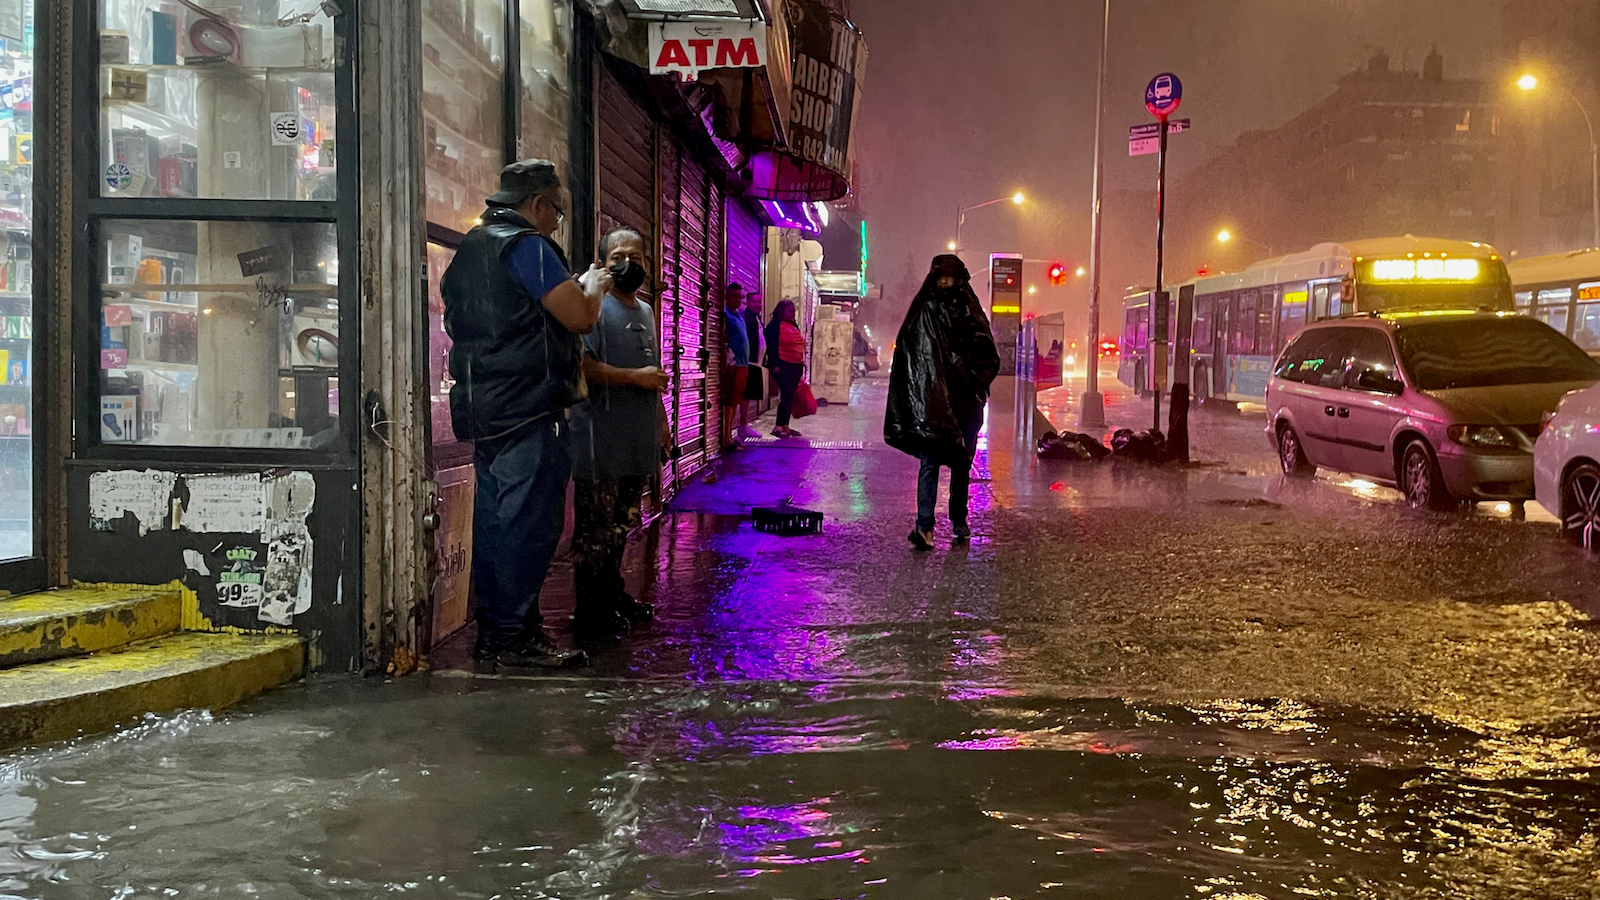 A person walks through the remnants of Hurricane Ida in the Bronx.